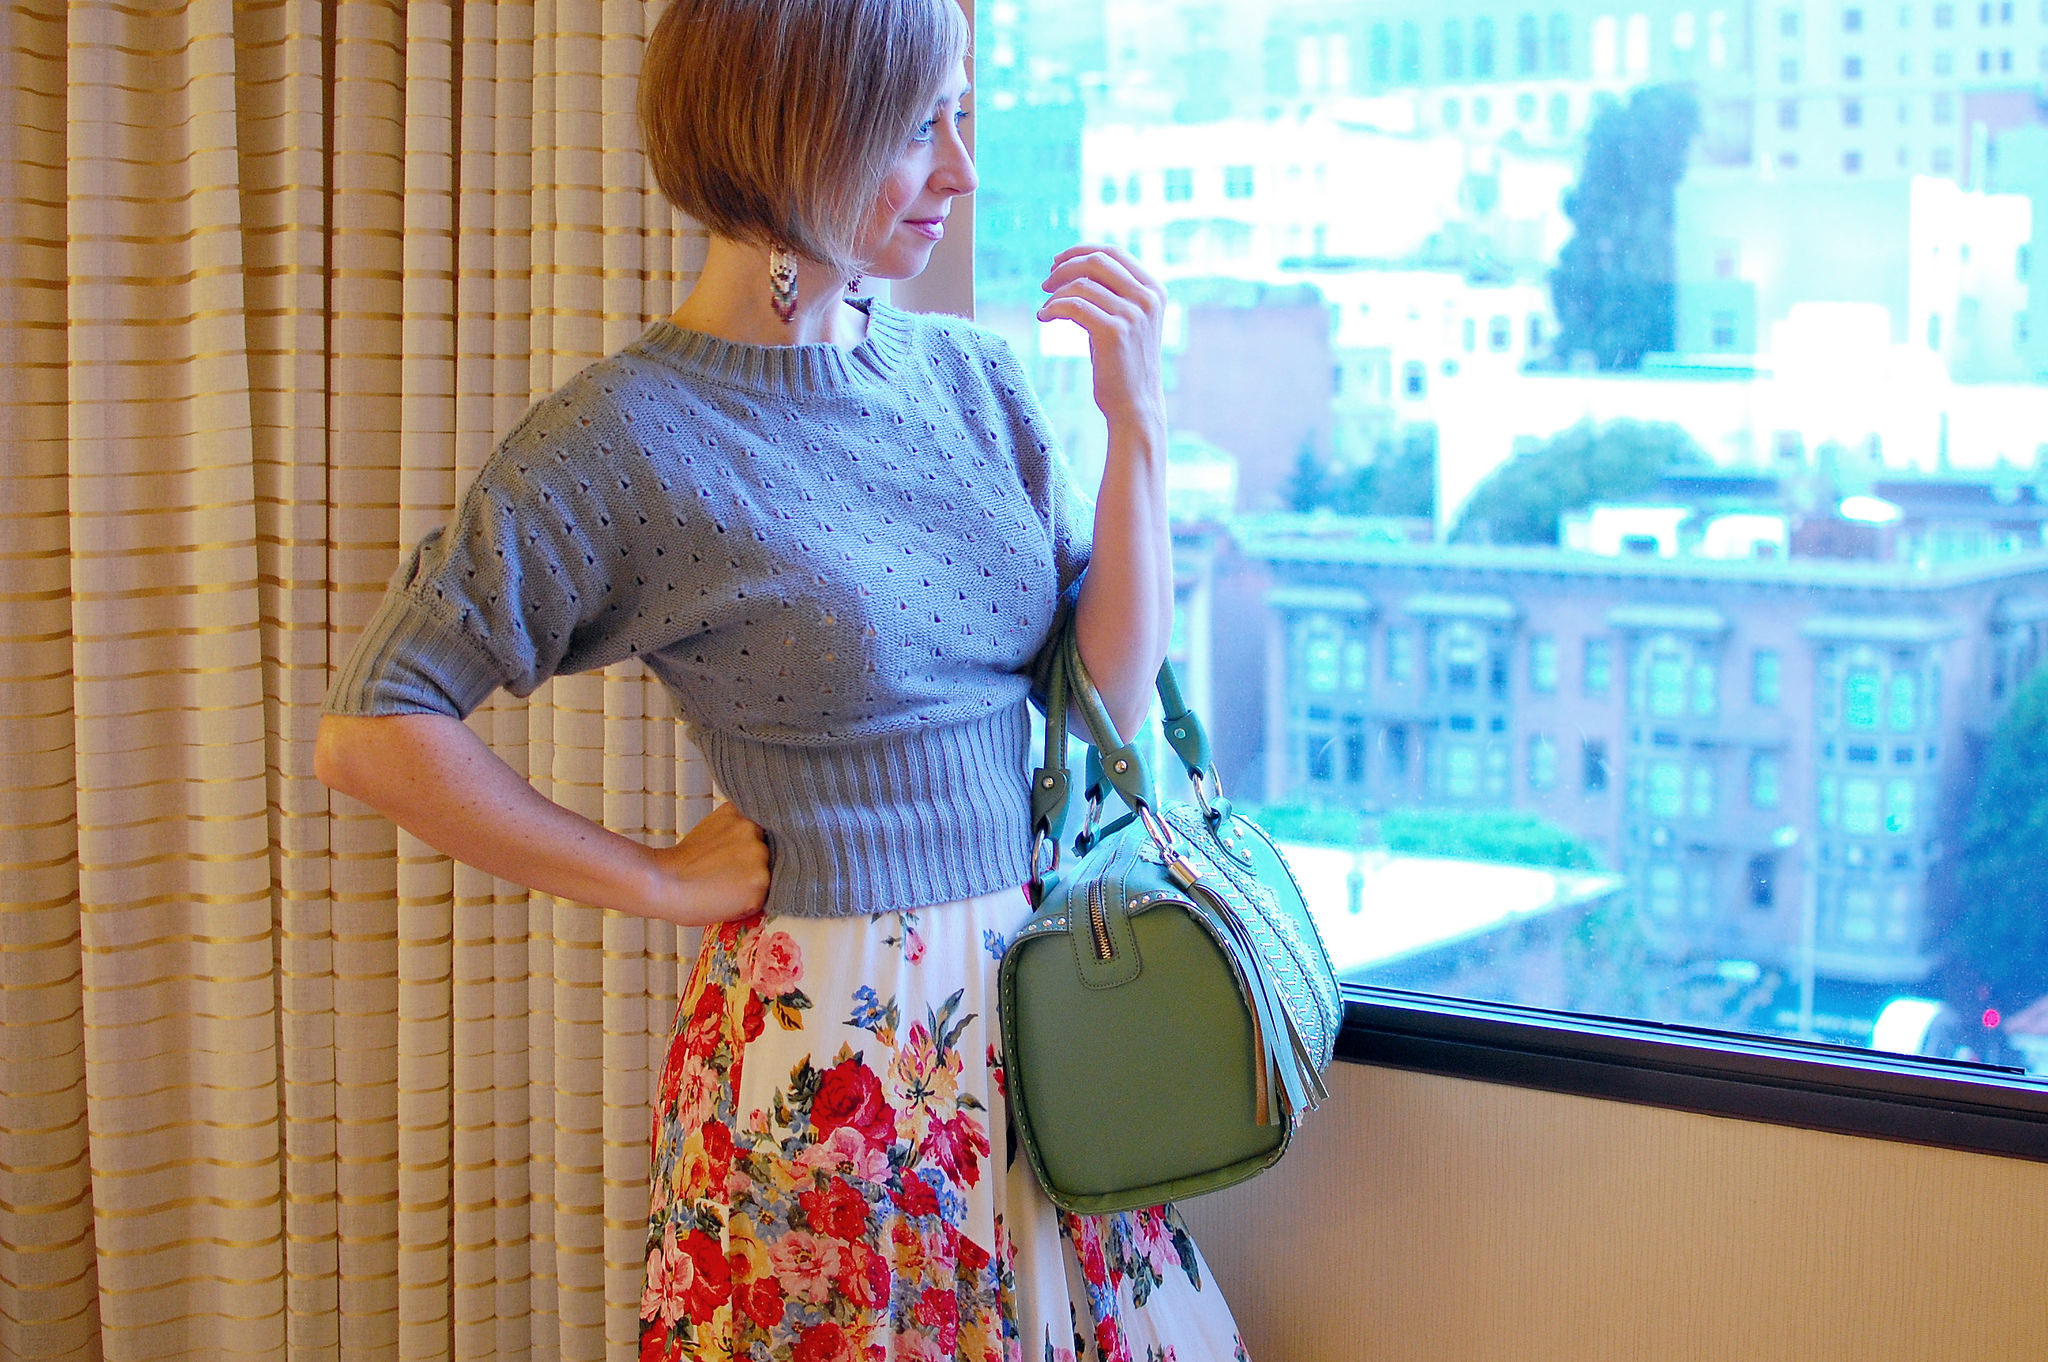 business casual san francisco outfit ootd whatiwore2day